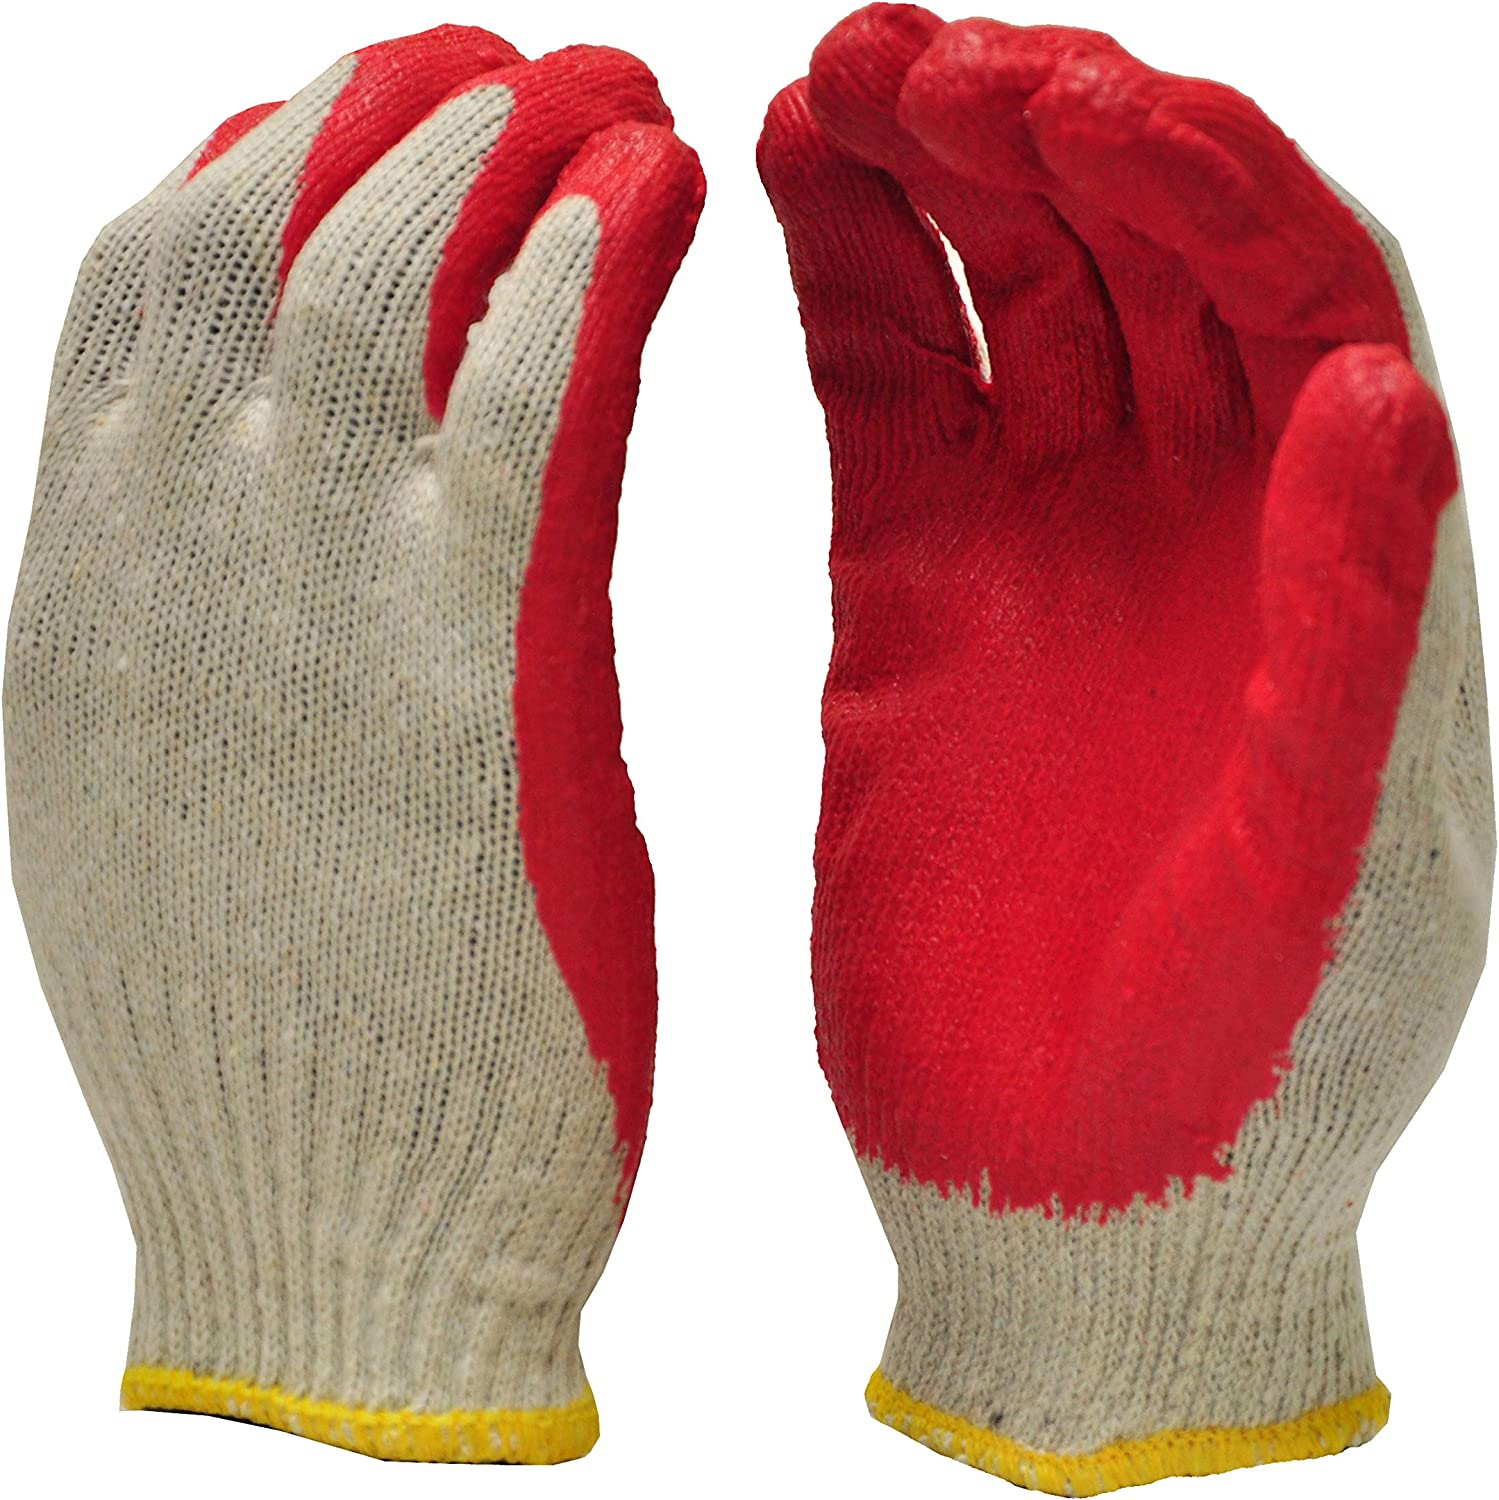 G F Products 3106-10 String Limited time sale Knit Max 47% OFF Latex Dipped Nitrile Palm Co